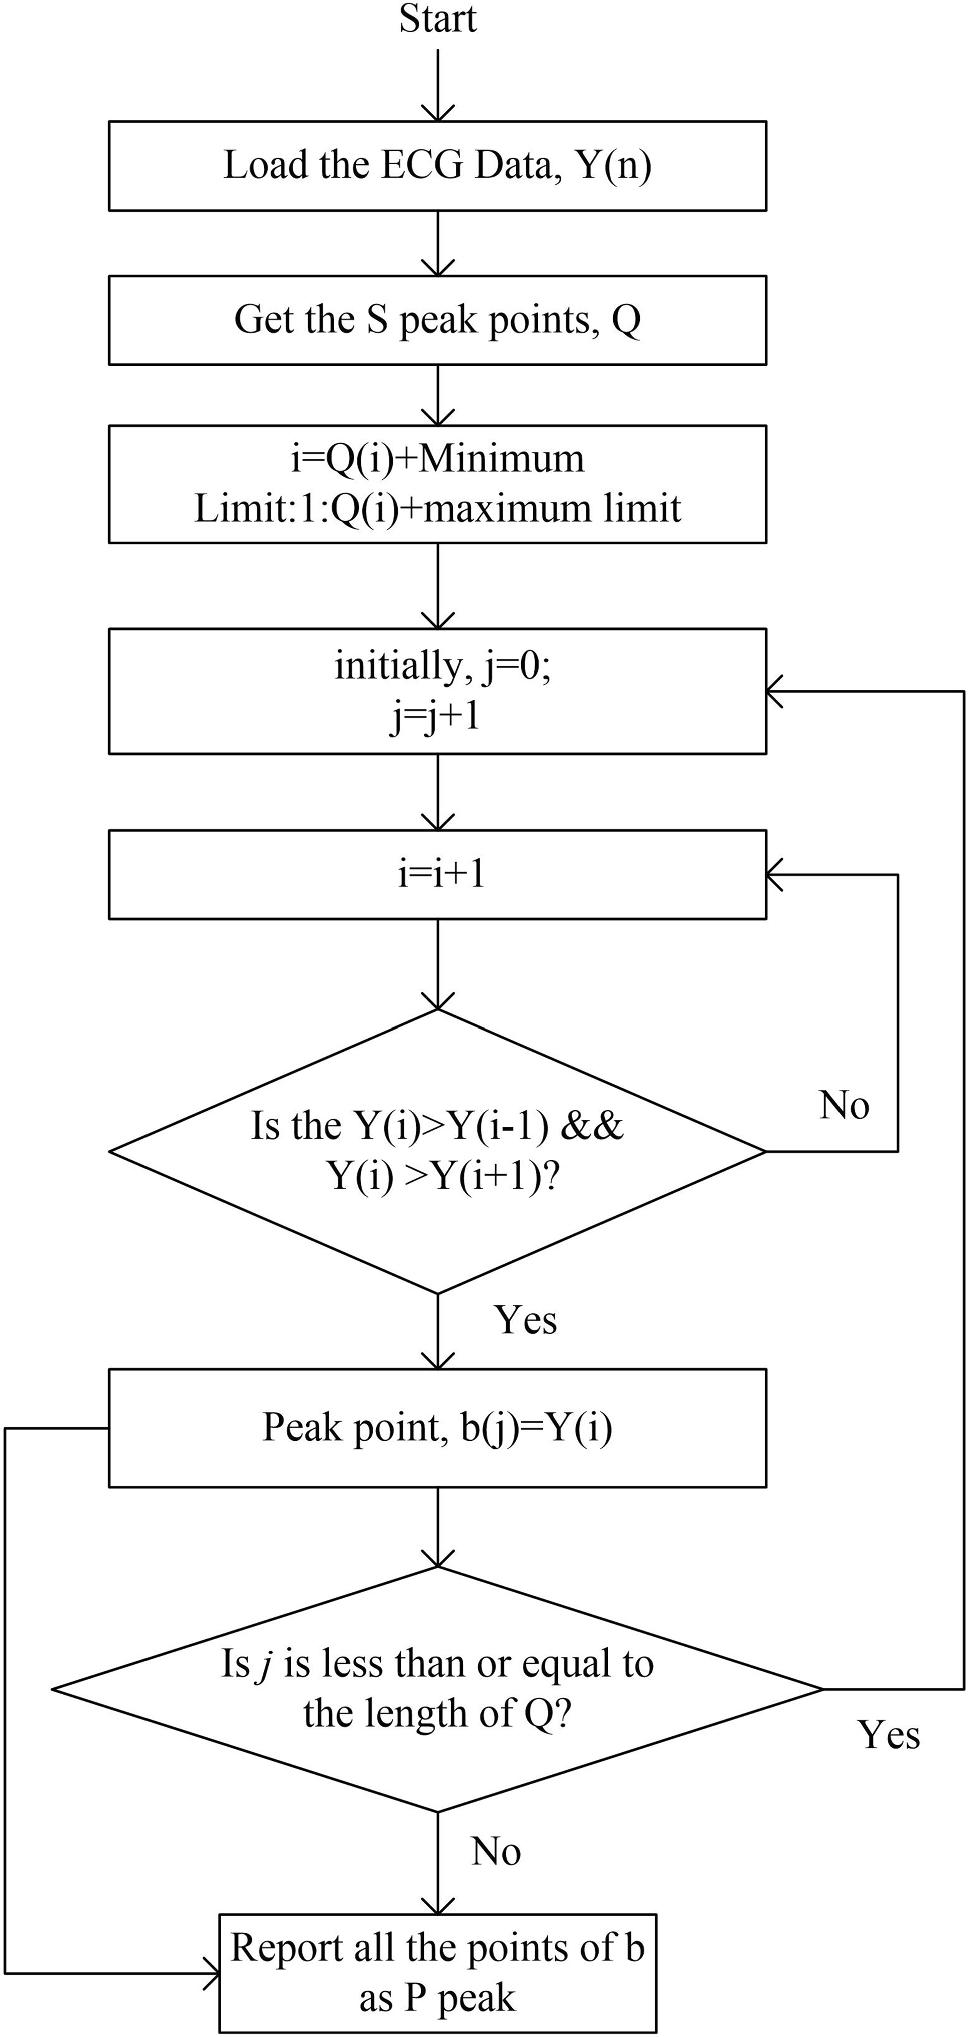 A statistical designing approach to MATLAB based functions